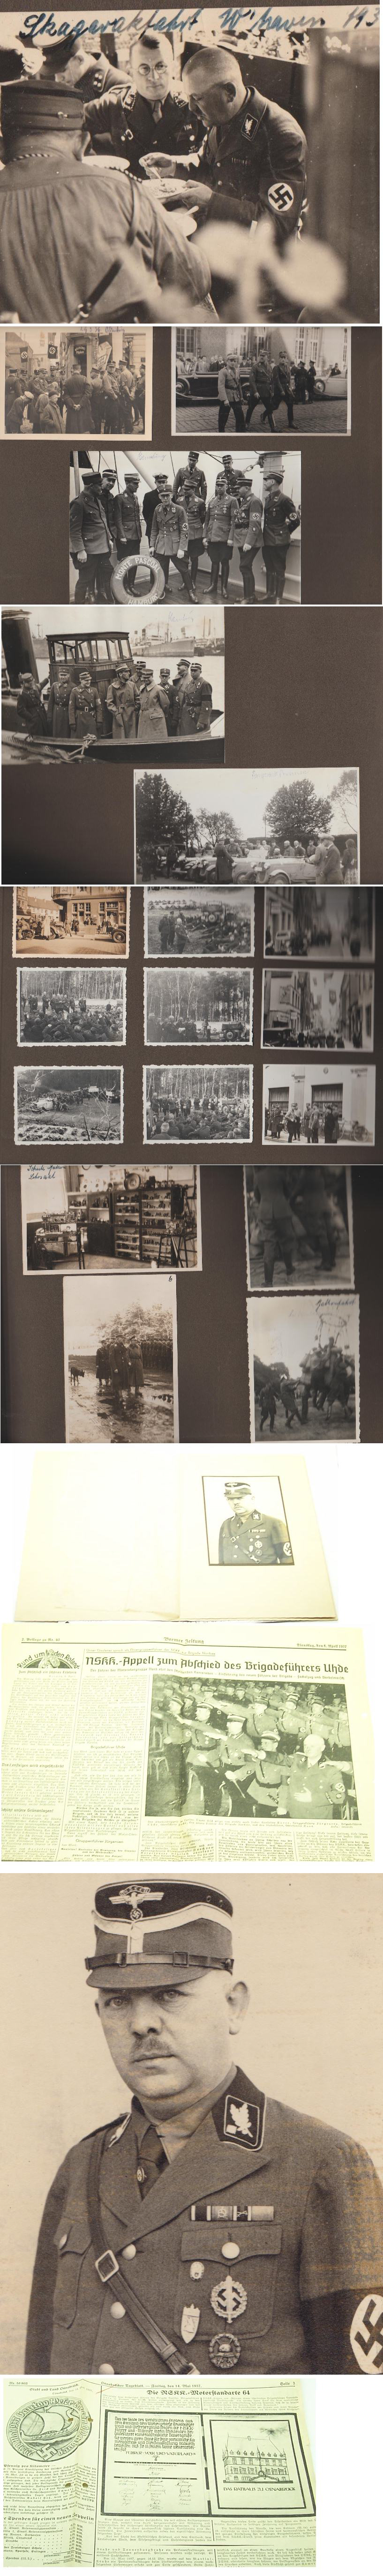 Personal Photo Album of NSKK Brigadefuhrer Uhde